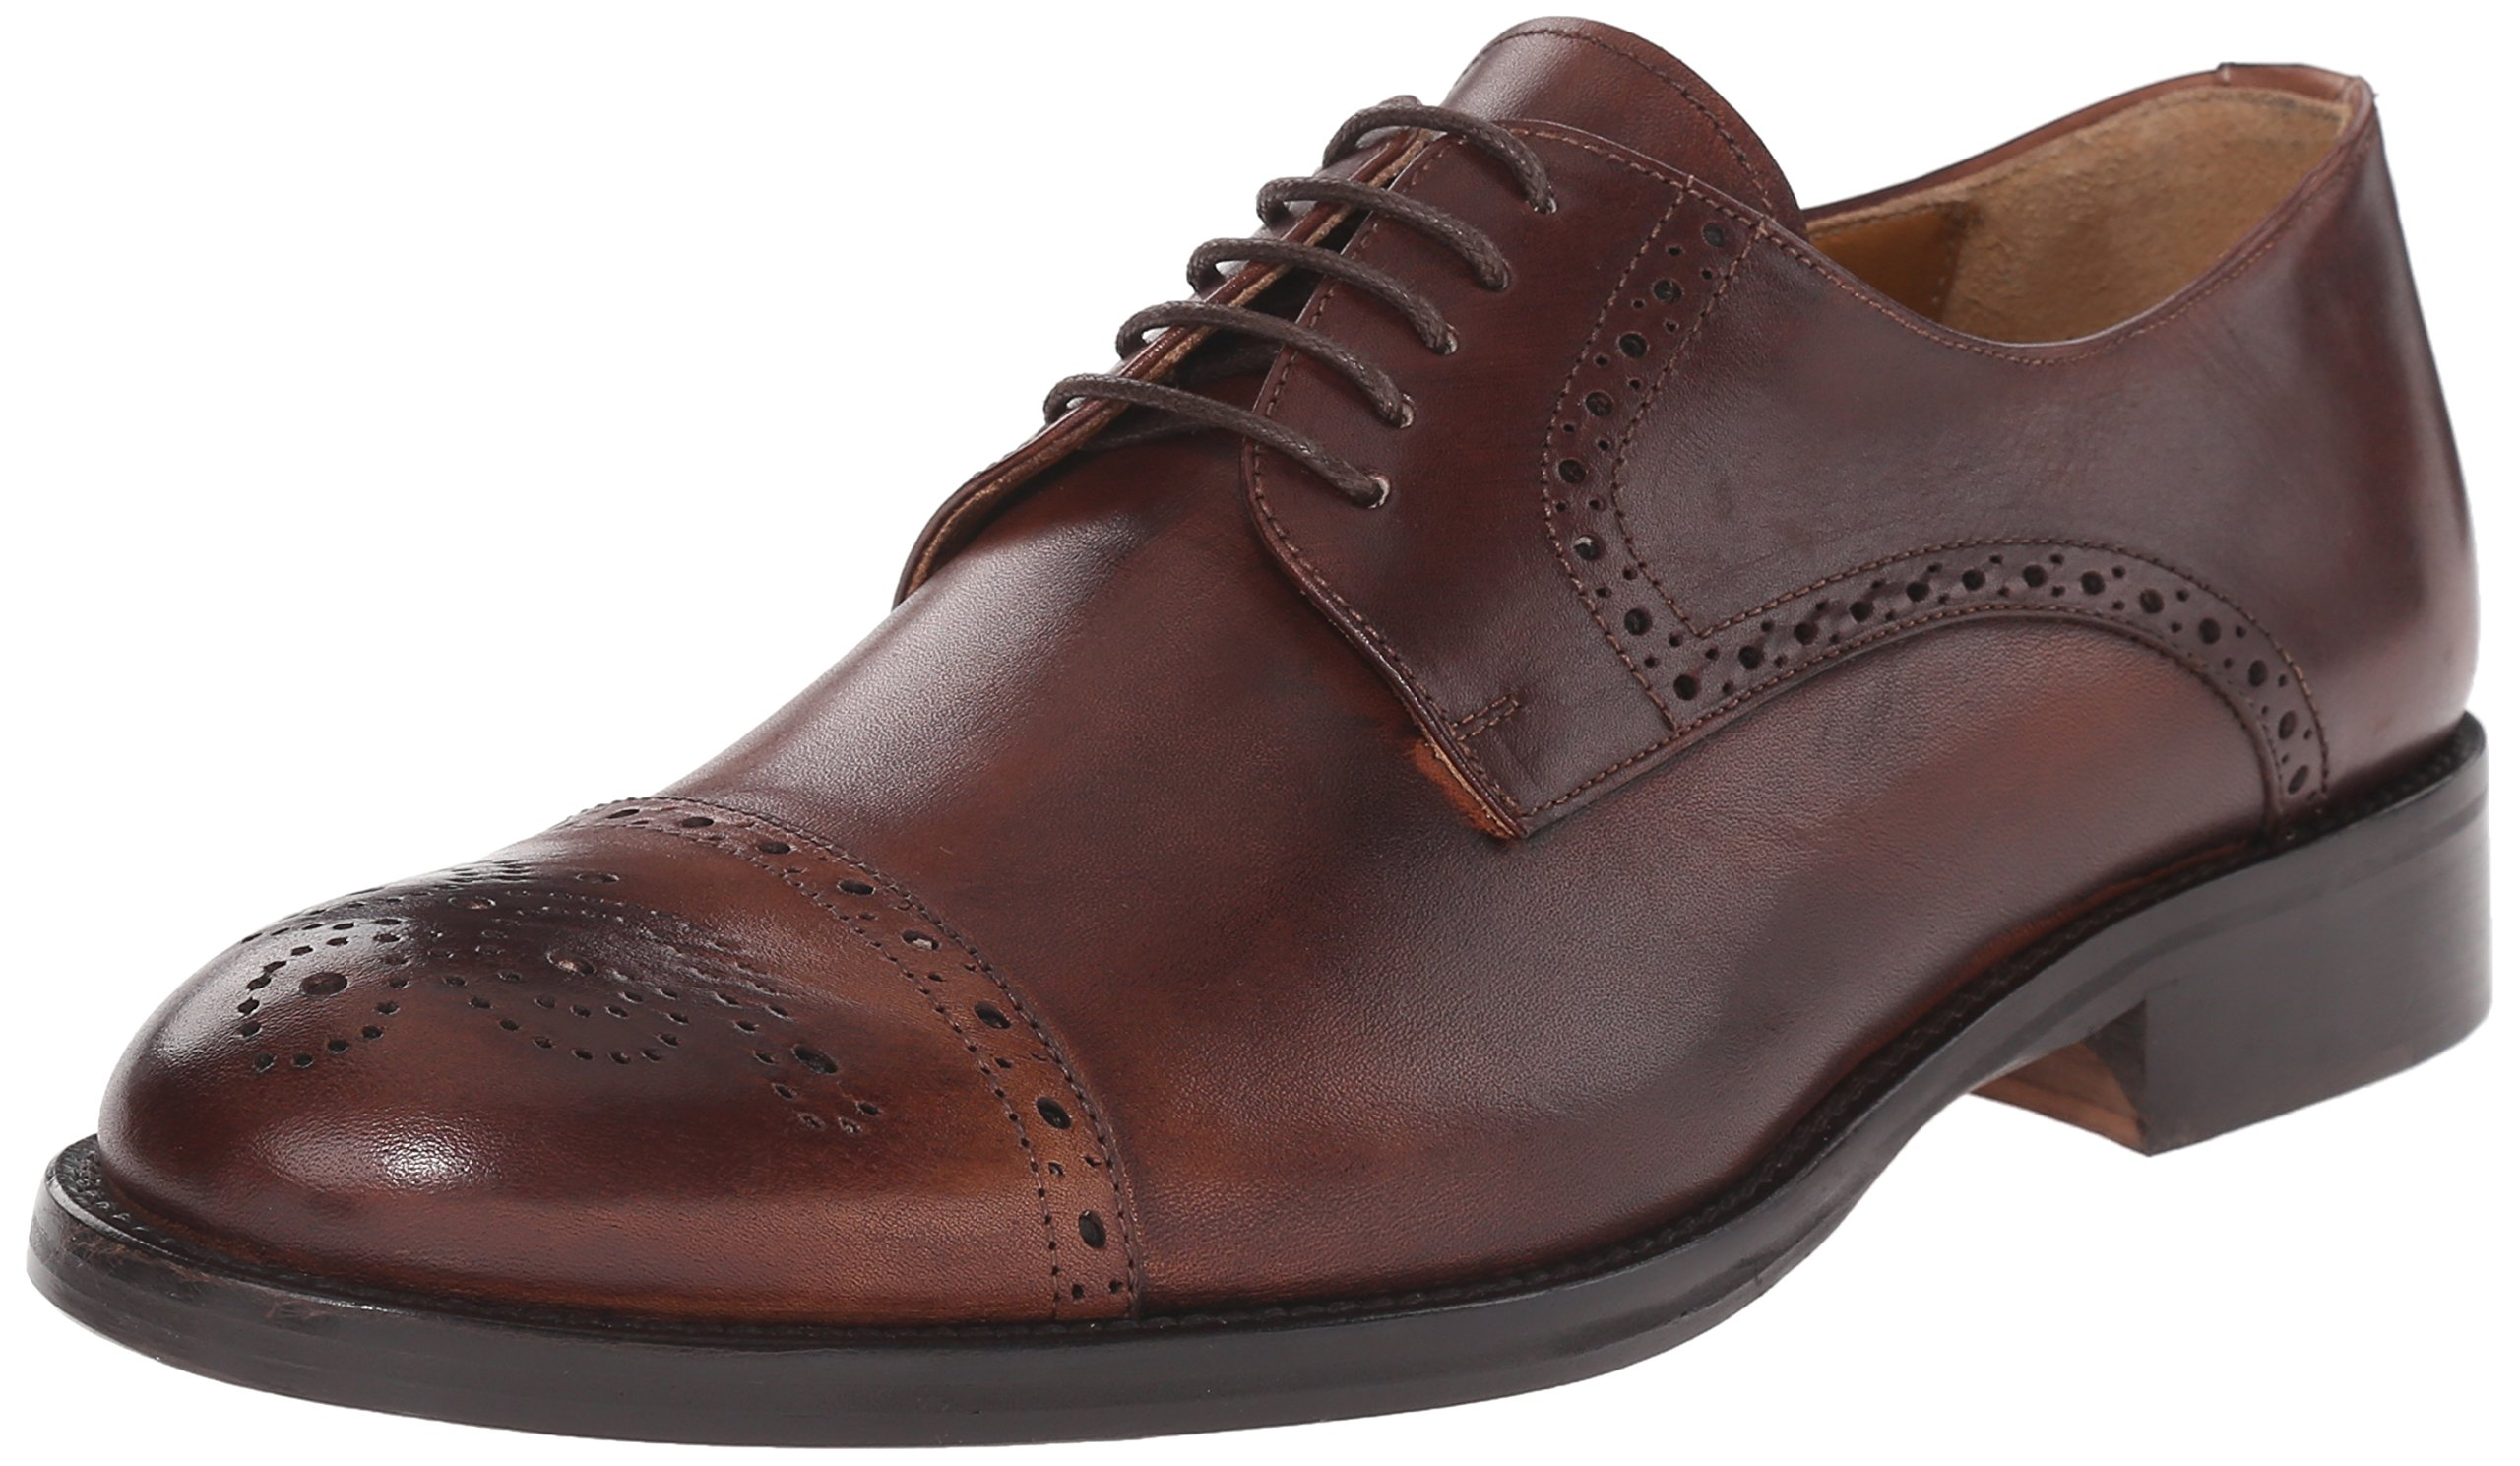 Kenneth Cole New York Men's Travel Agent Oxford, Brown, 7 M US